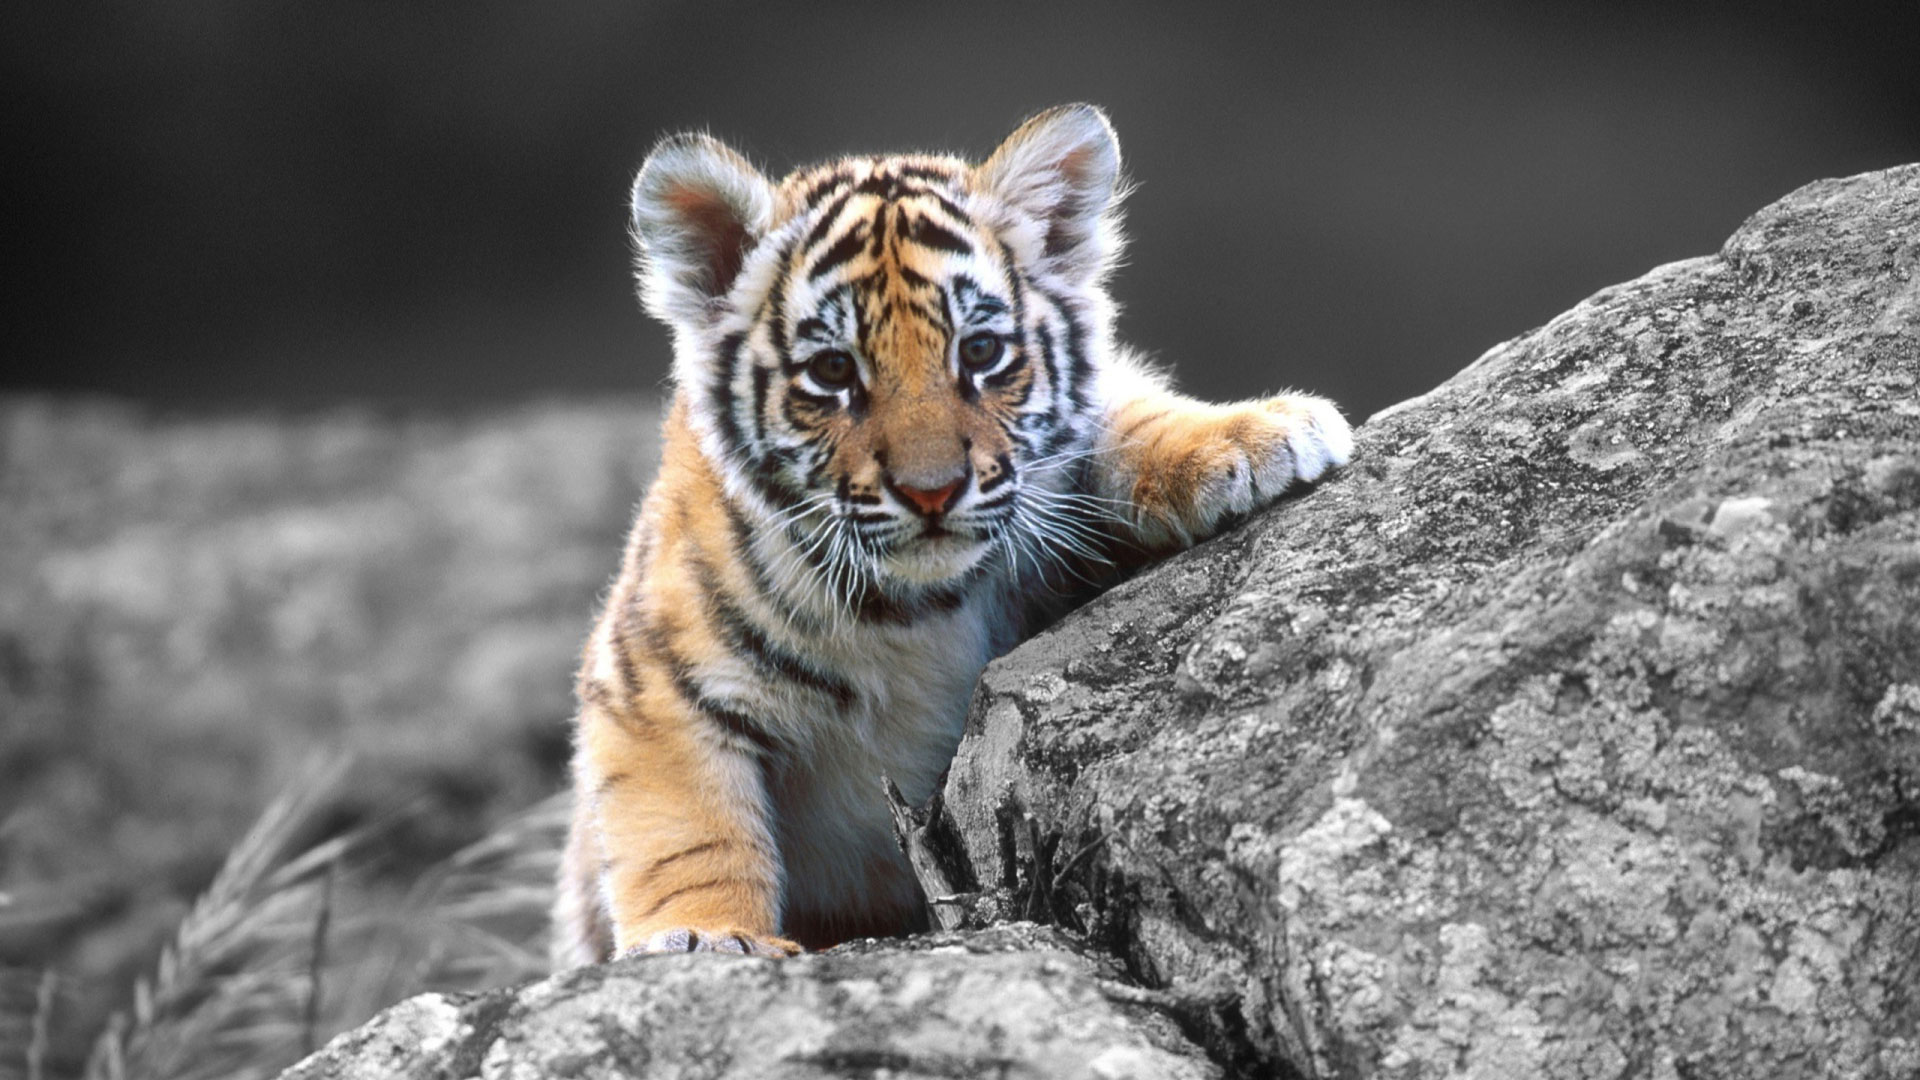 Tiger Wallpaper Hd Wallpaper